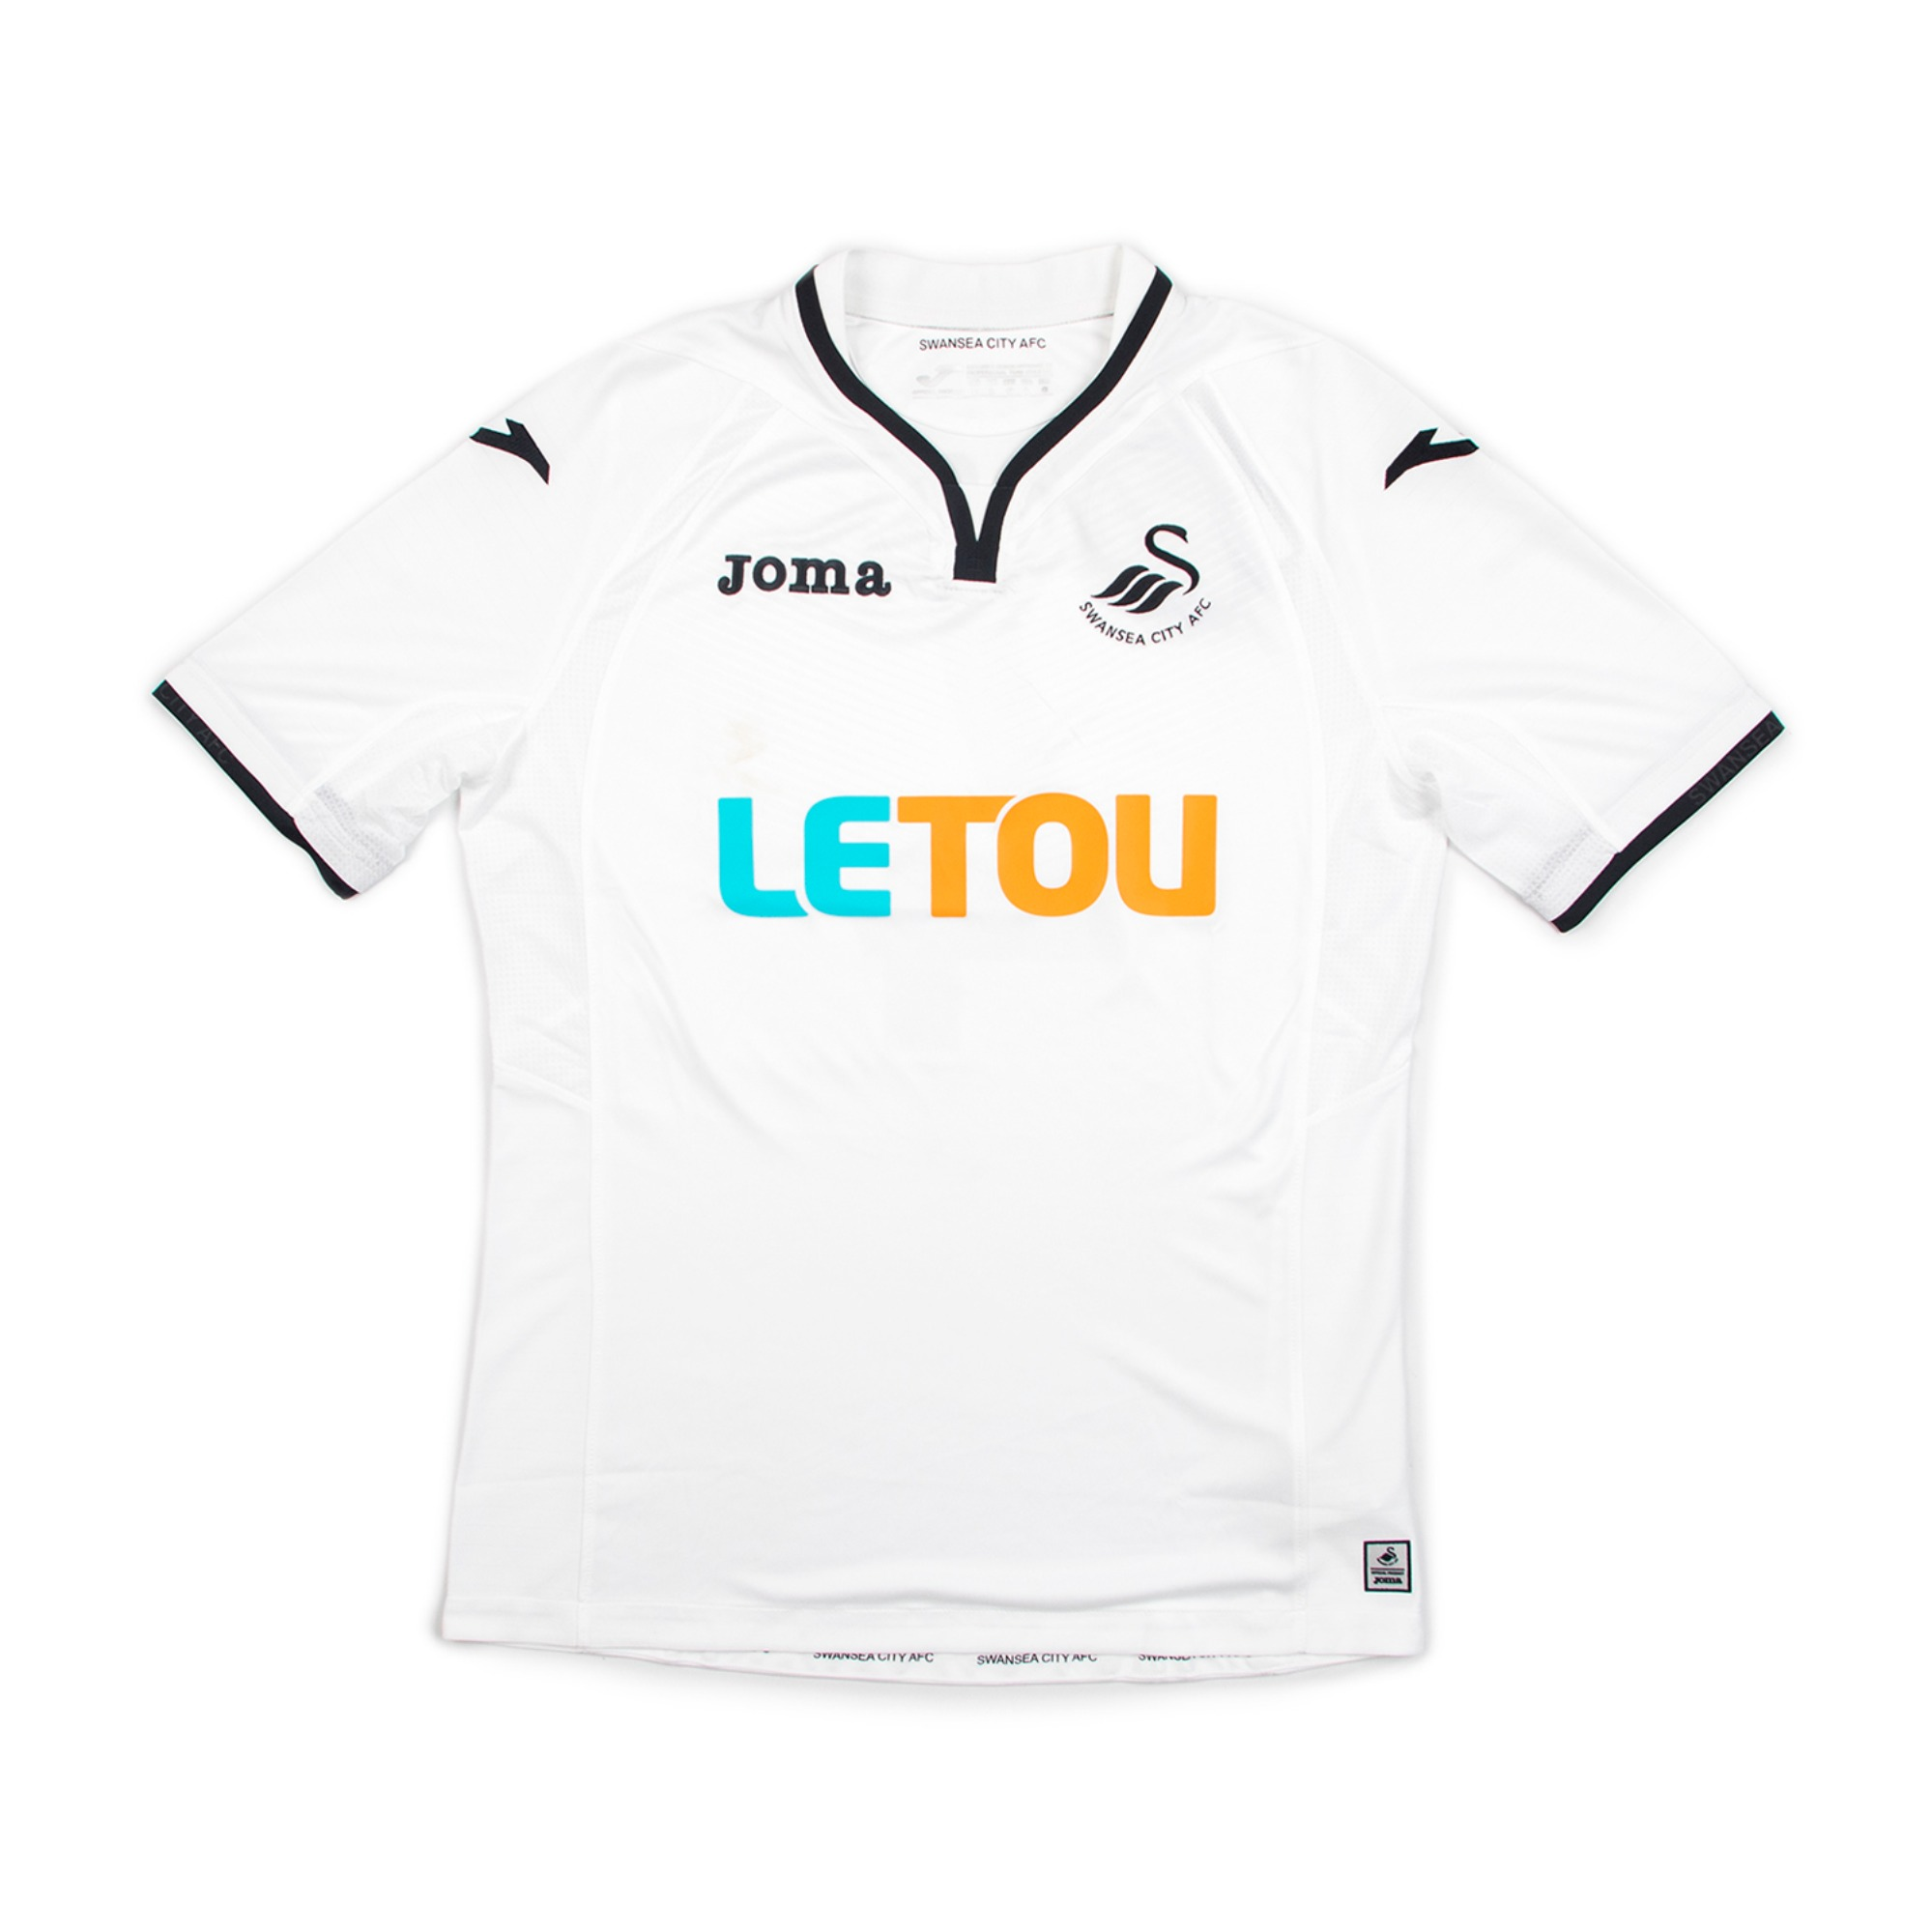 SWANSEA CITY 17-18 HOME JERSEY S/S #4 KI.S.Y